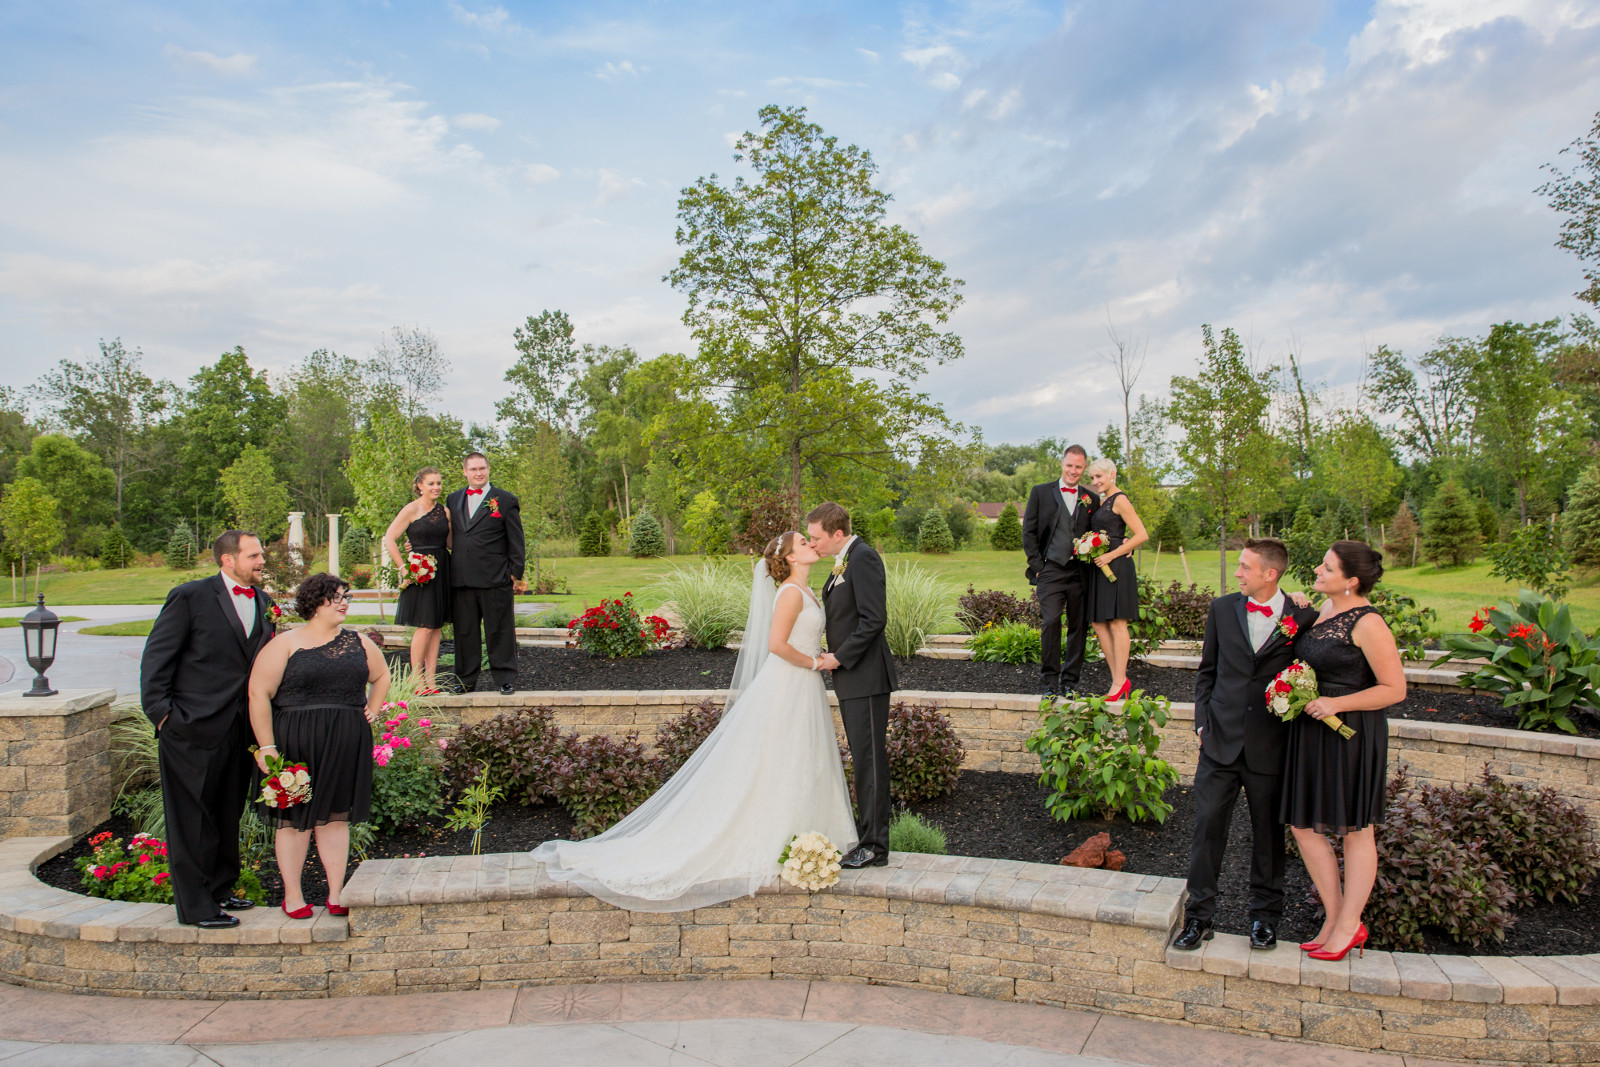 The columns banquet facilities wedding venue in buffalo ny new outdoor patio garden junglespirit Image collections